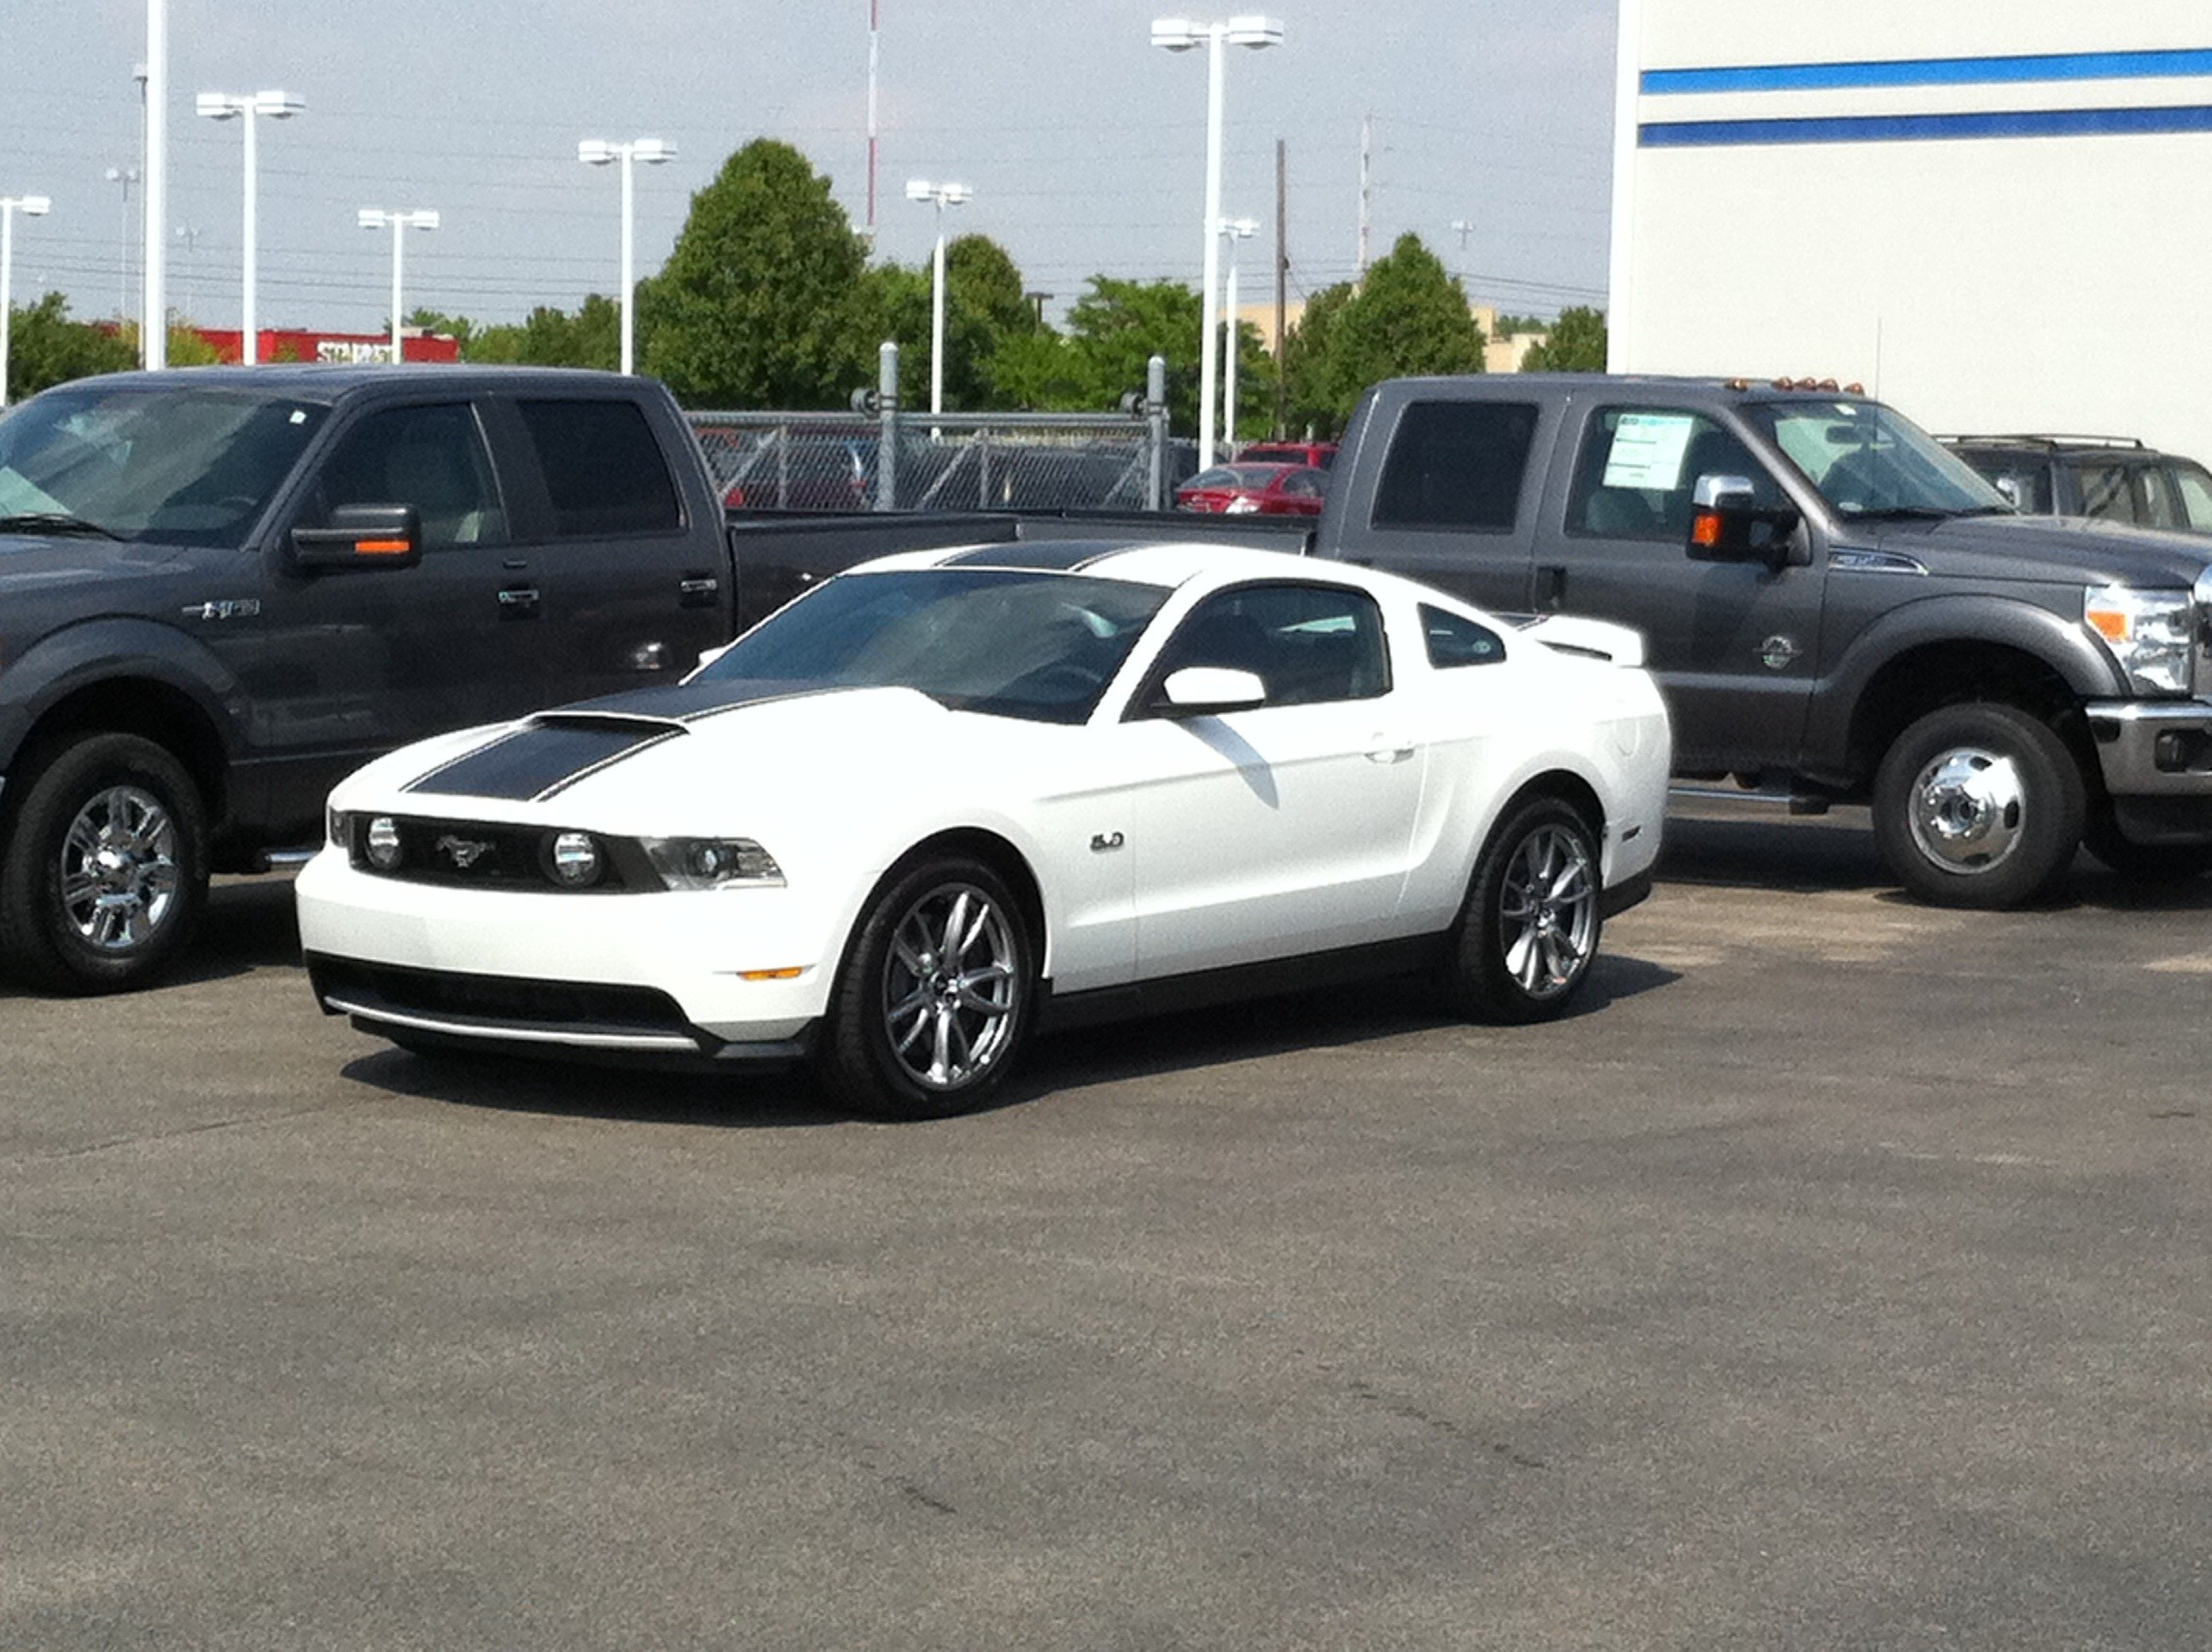 2012 Mustang Gt Performance White W Stripes Page 2